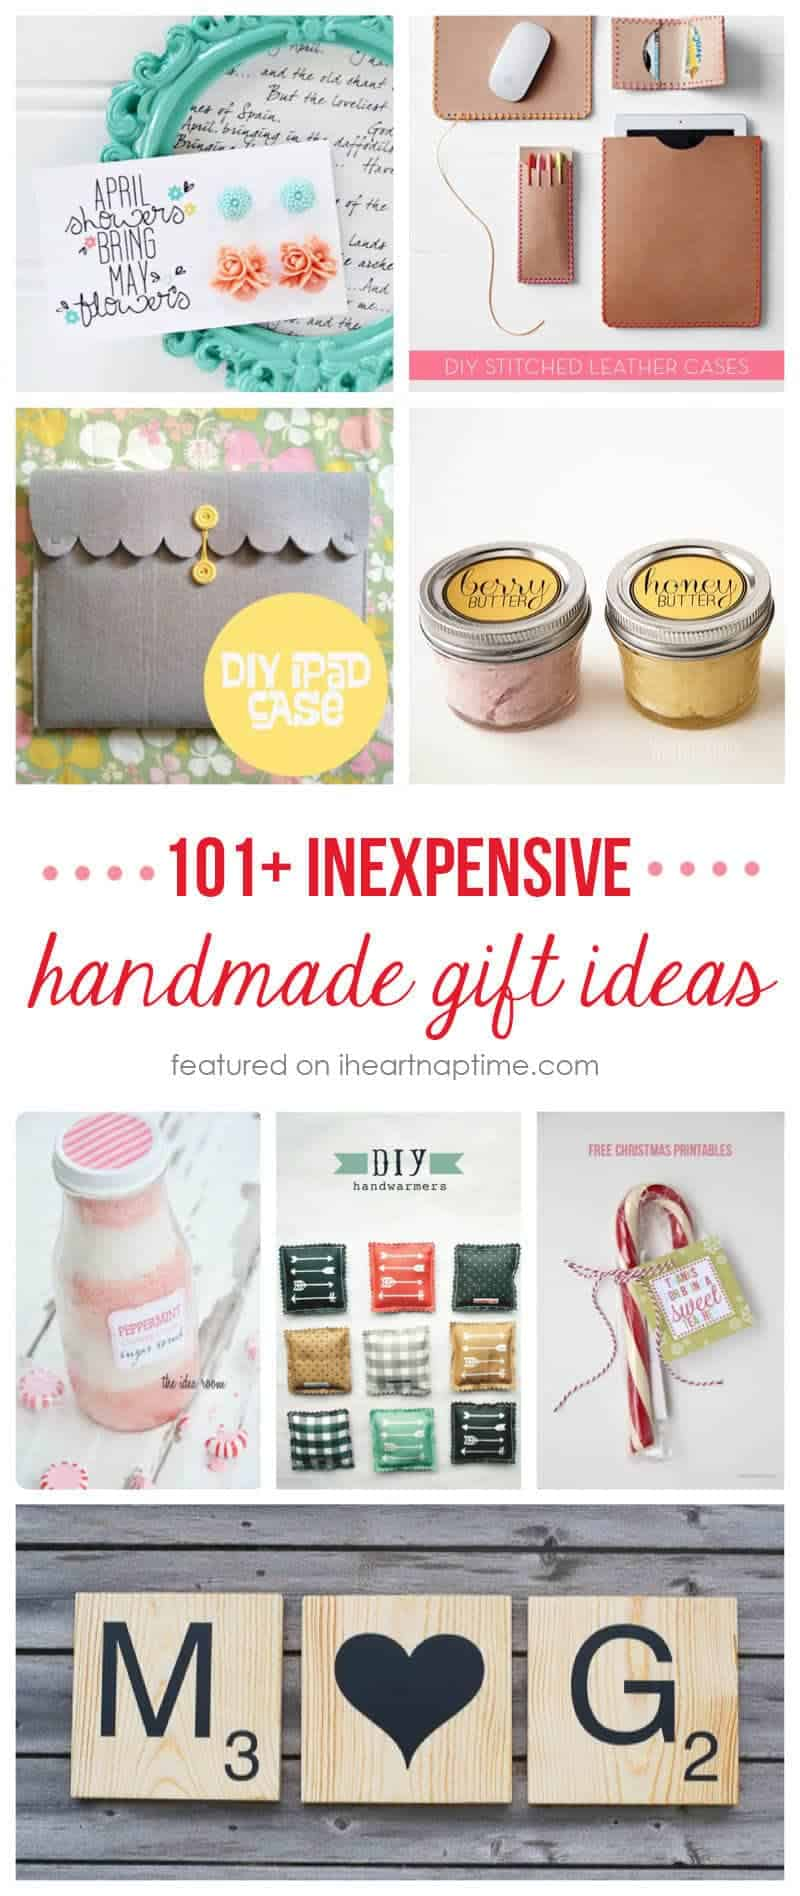 101 Inexpensive Handmade Christmas Gifts On Iheartnaptime